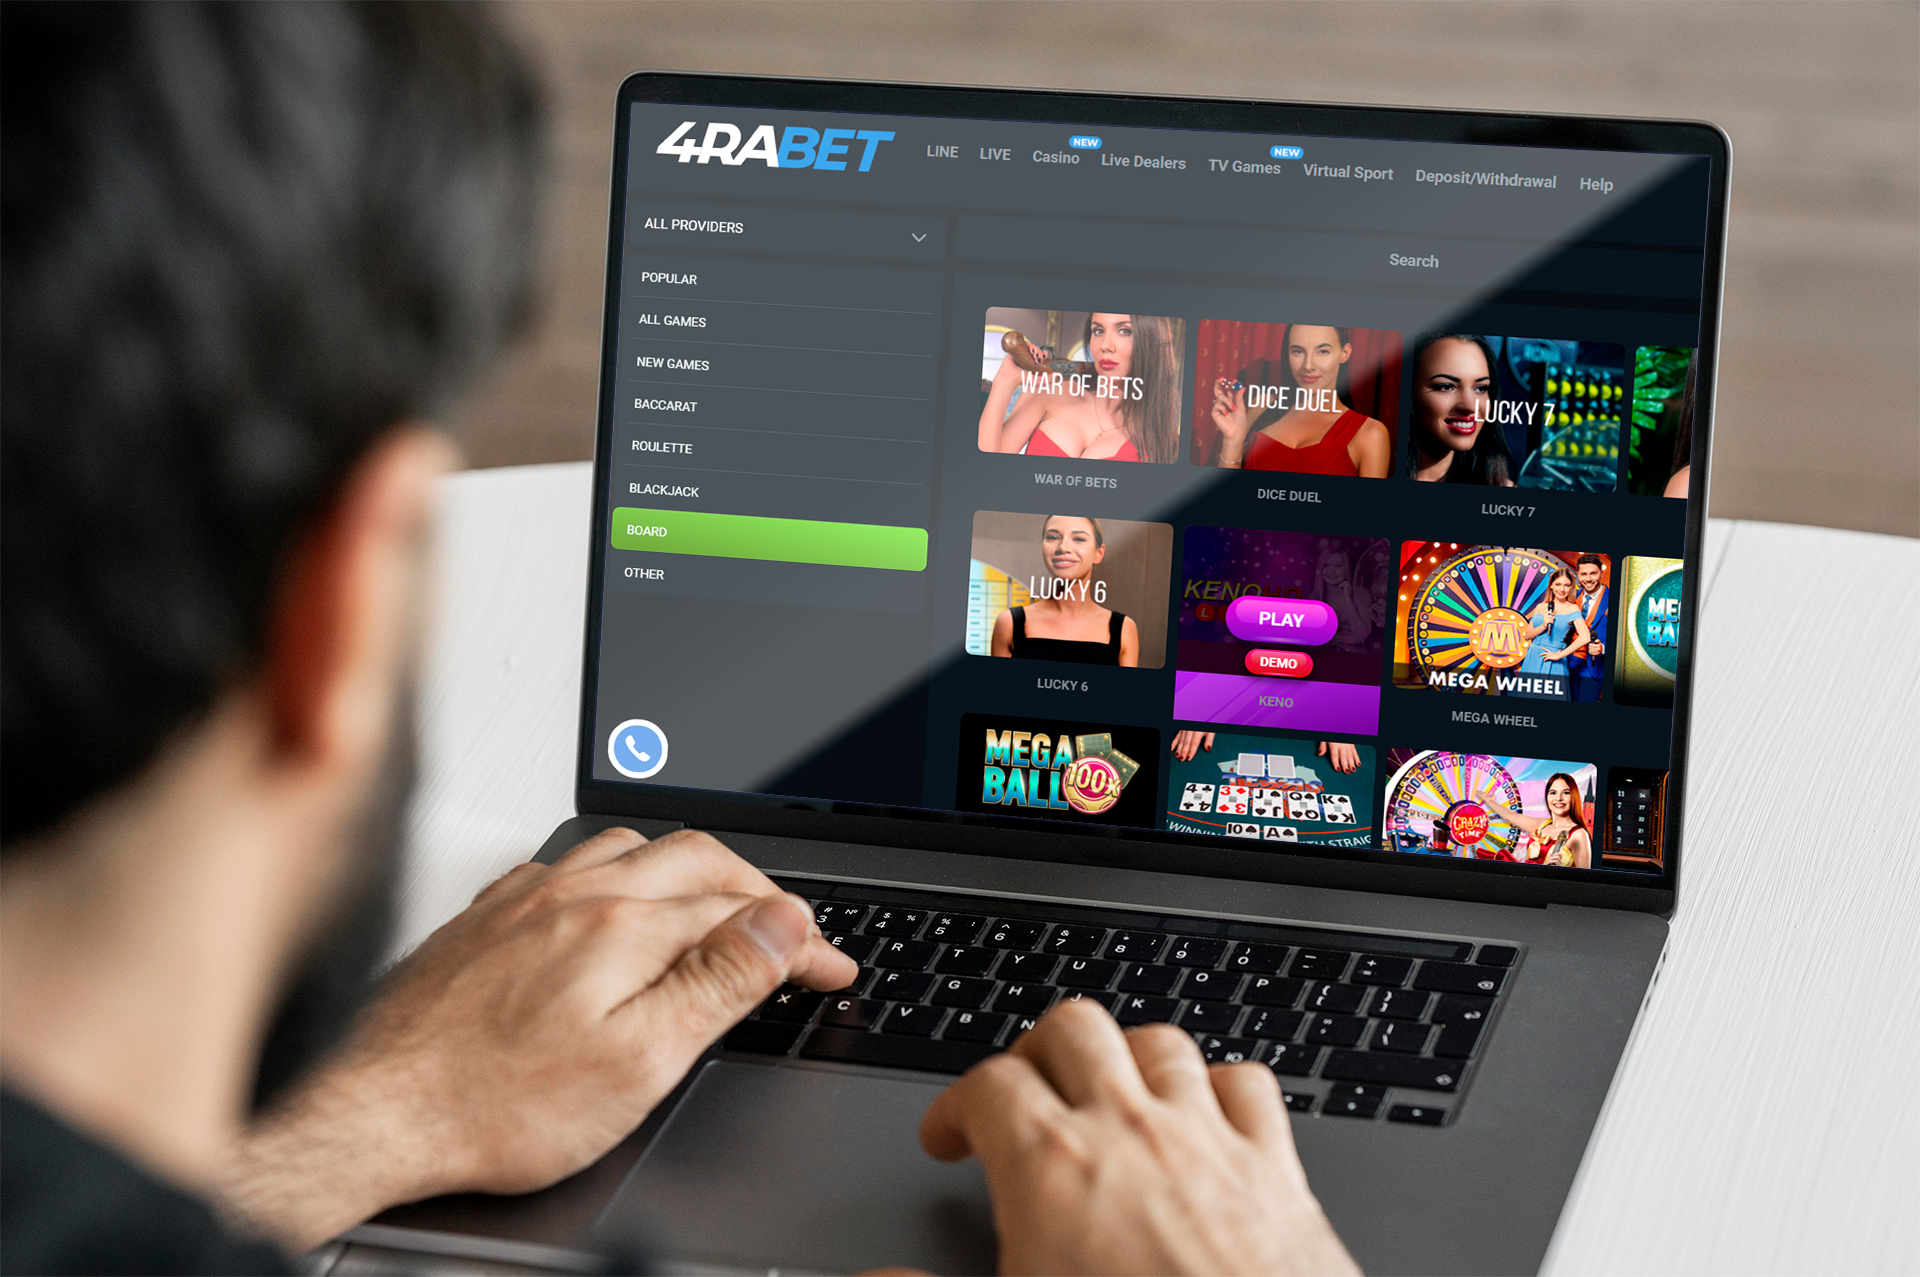 Play casino games with advantage at 4rabet.